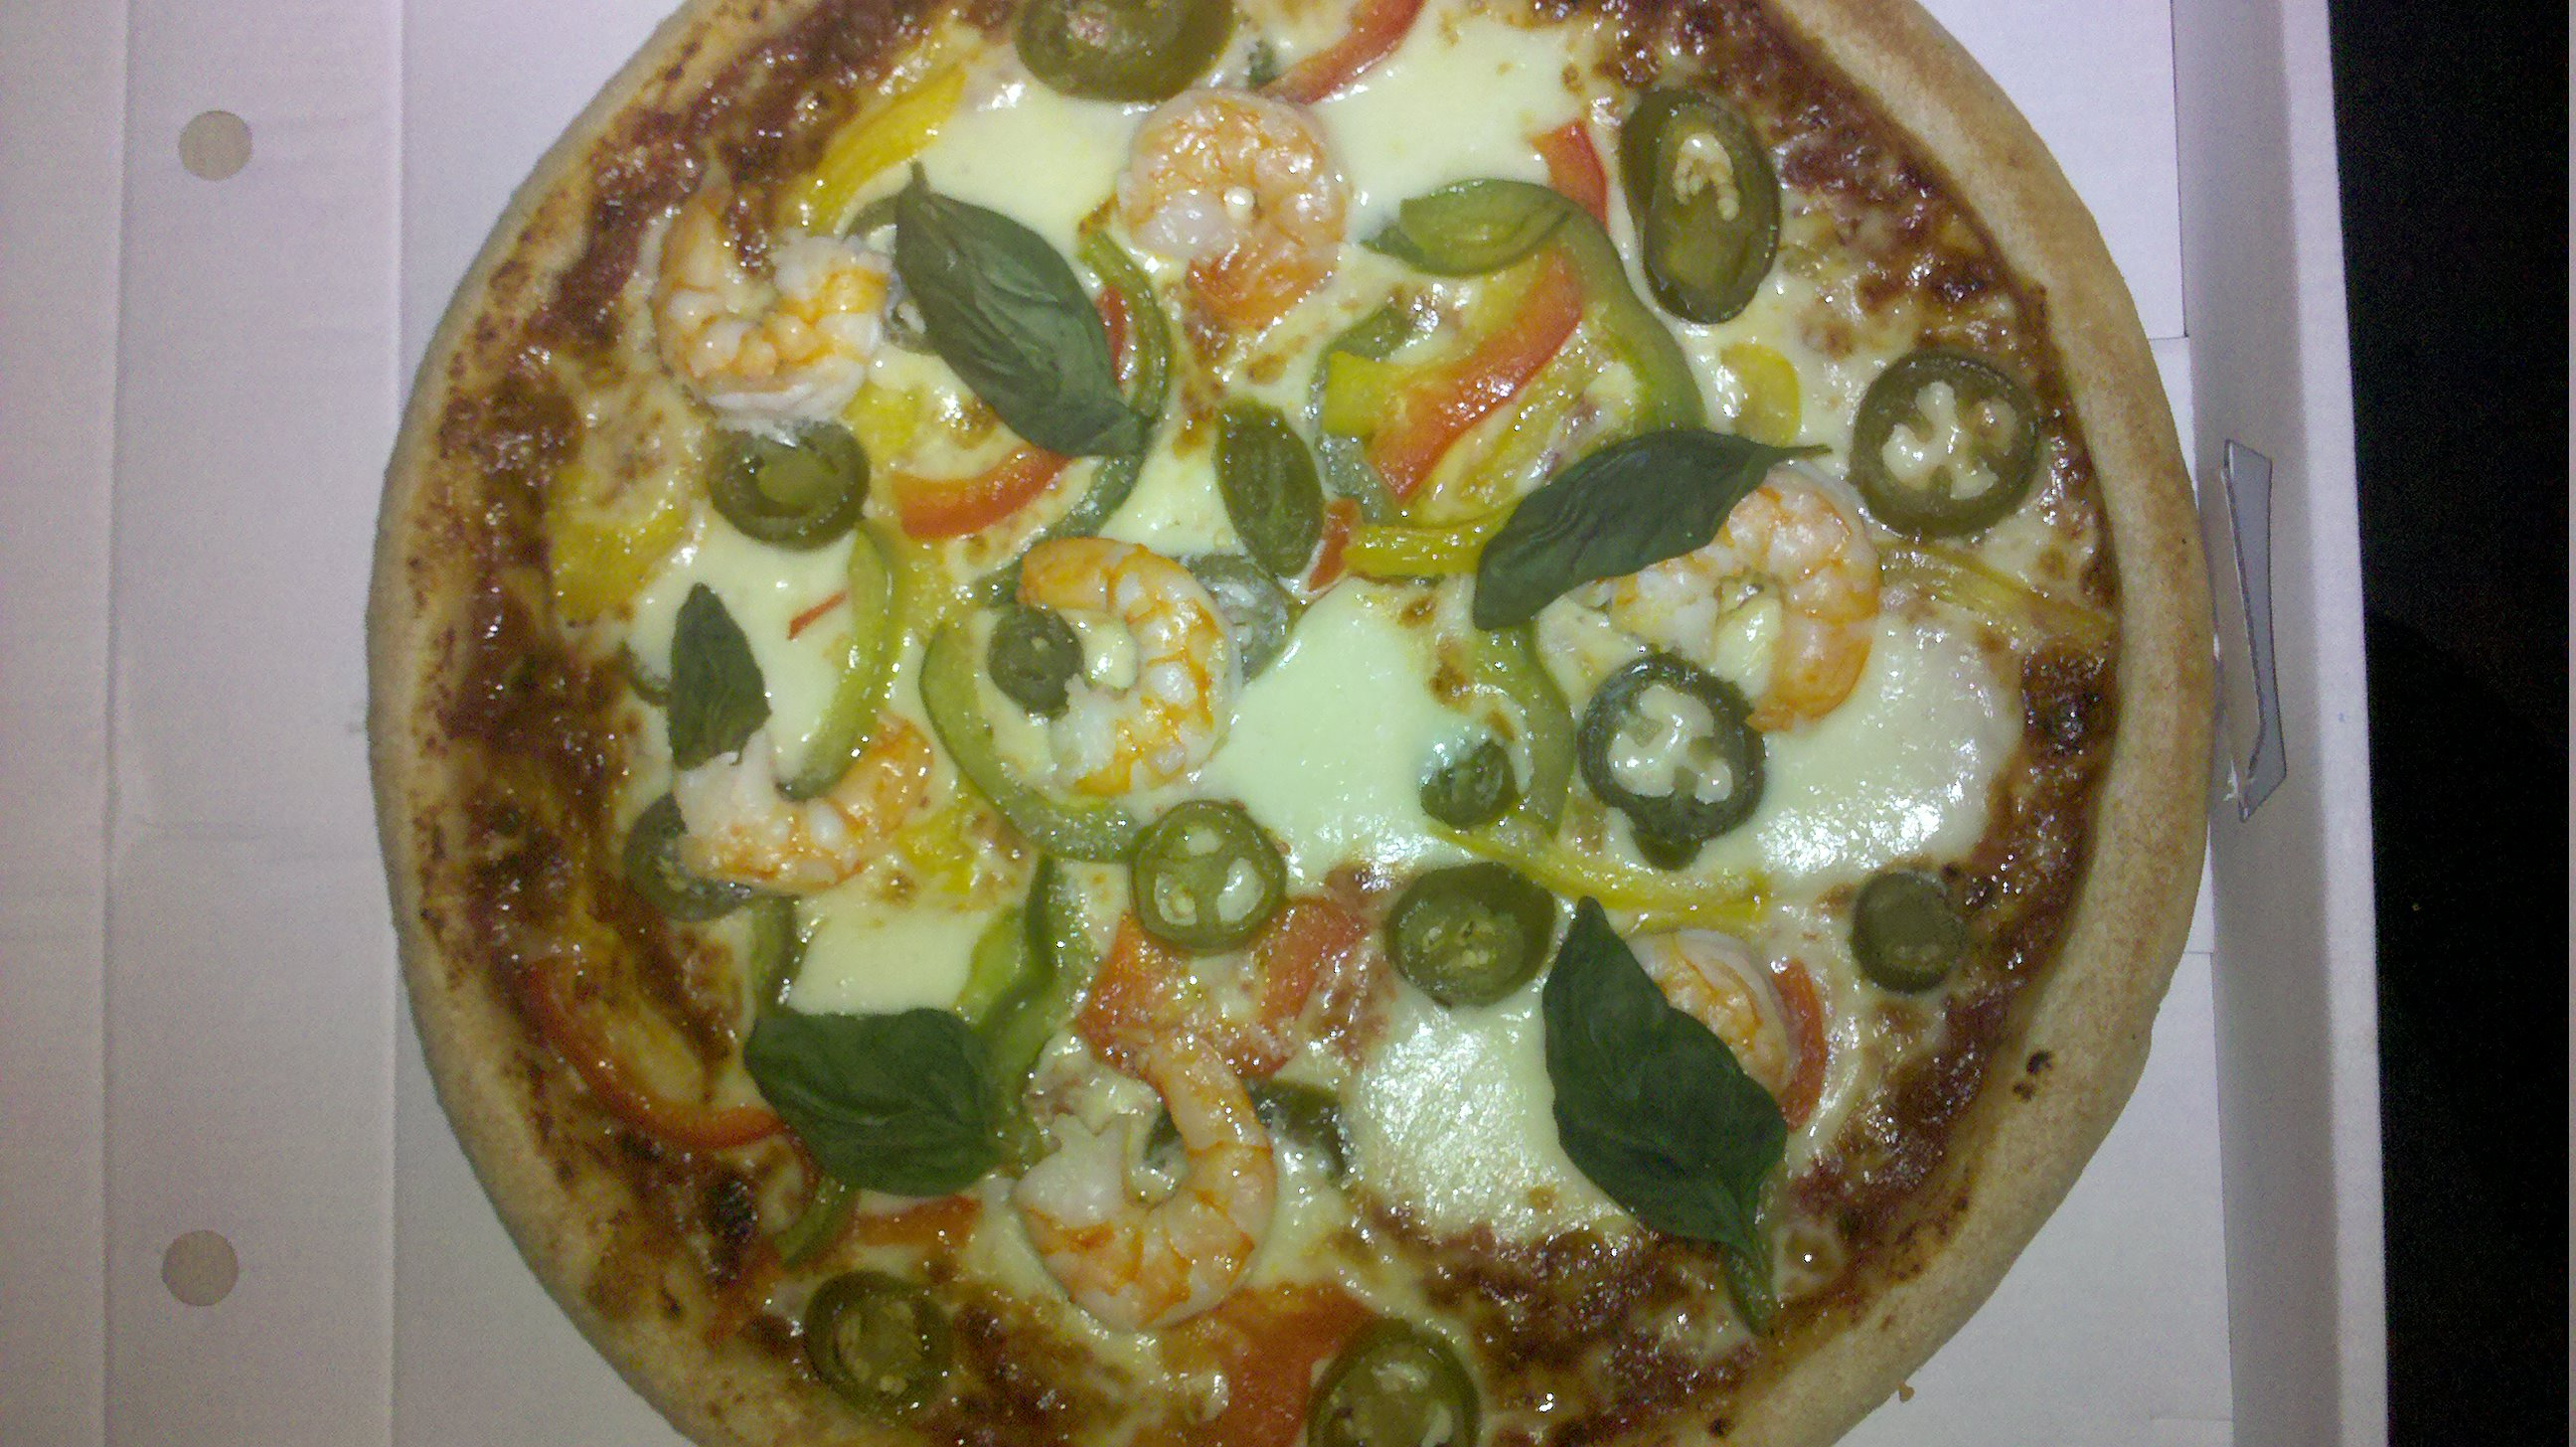 at work, germany :: pizza scampi piccanti von joeys pizza